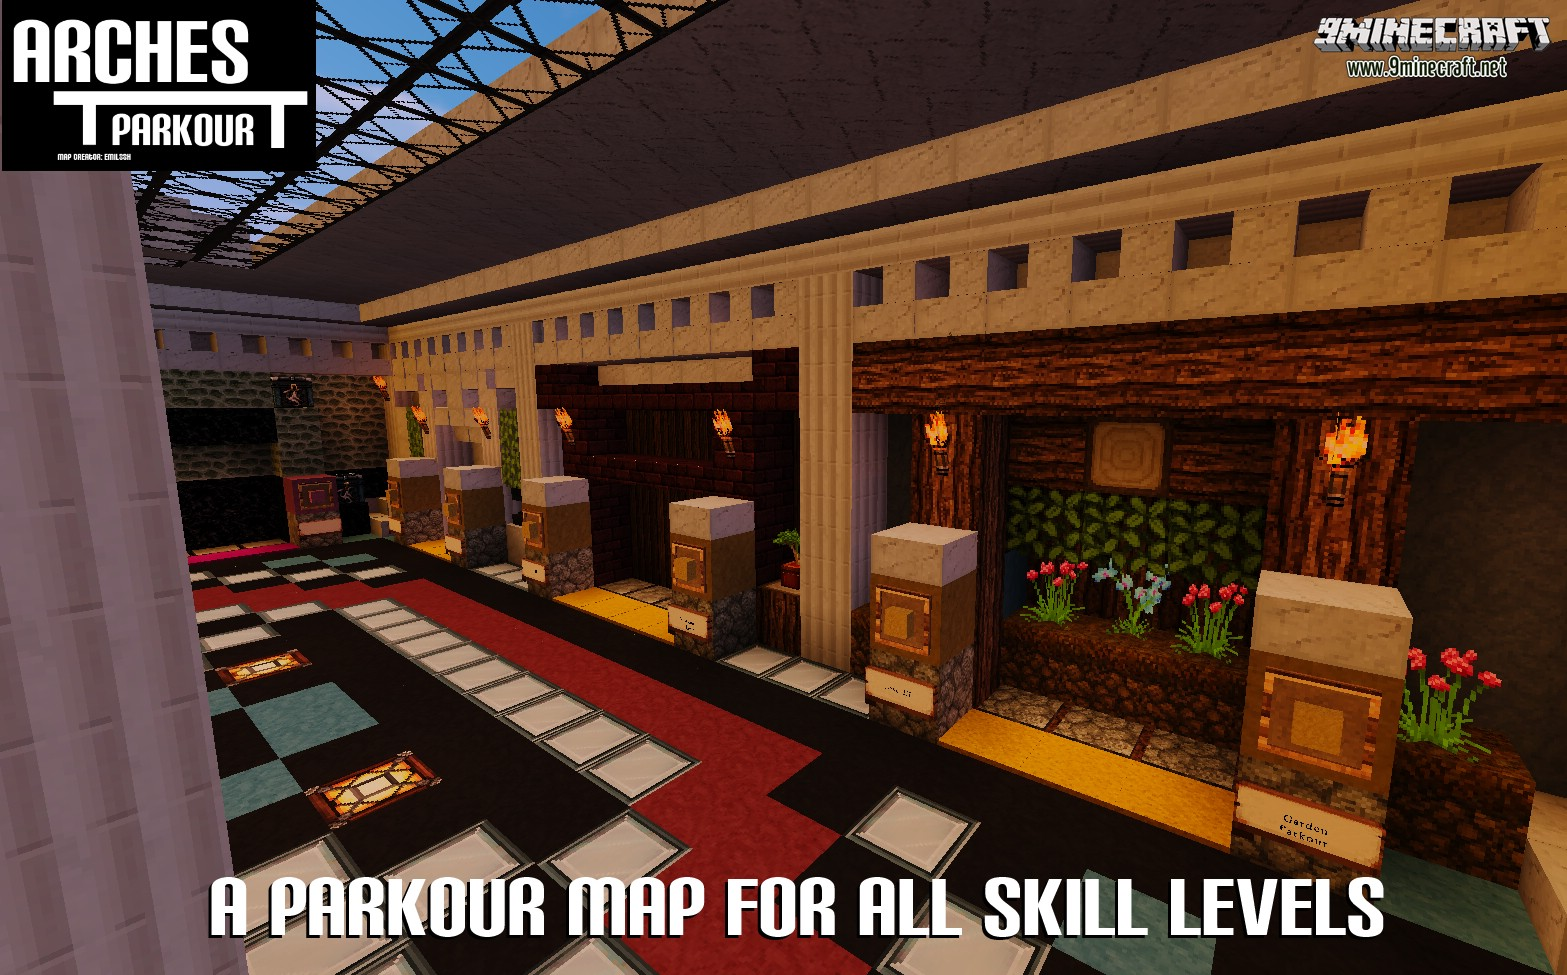 Arches-Parkour-Map-2.jpg